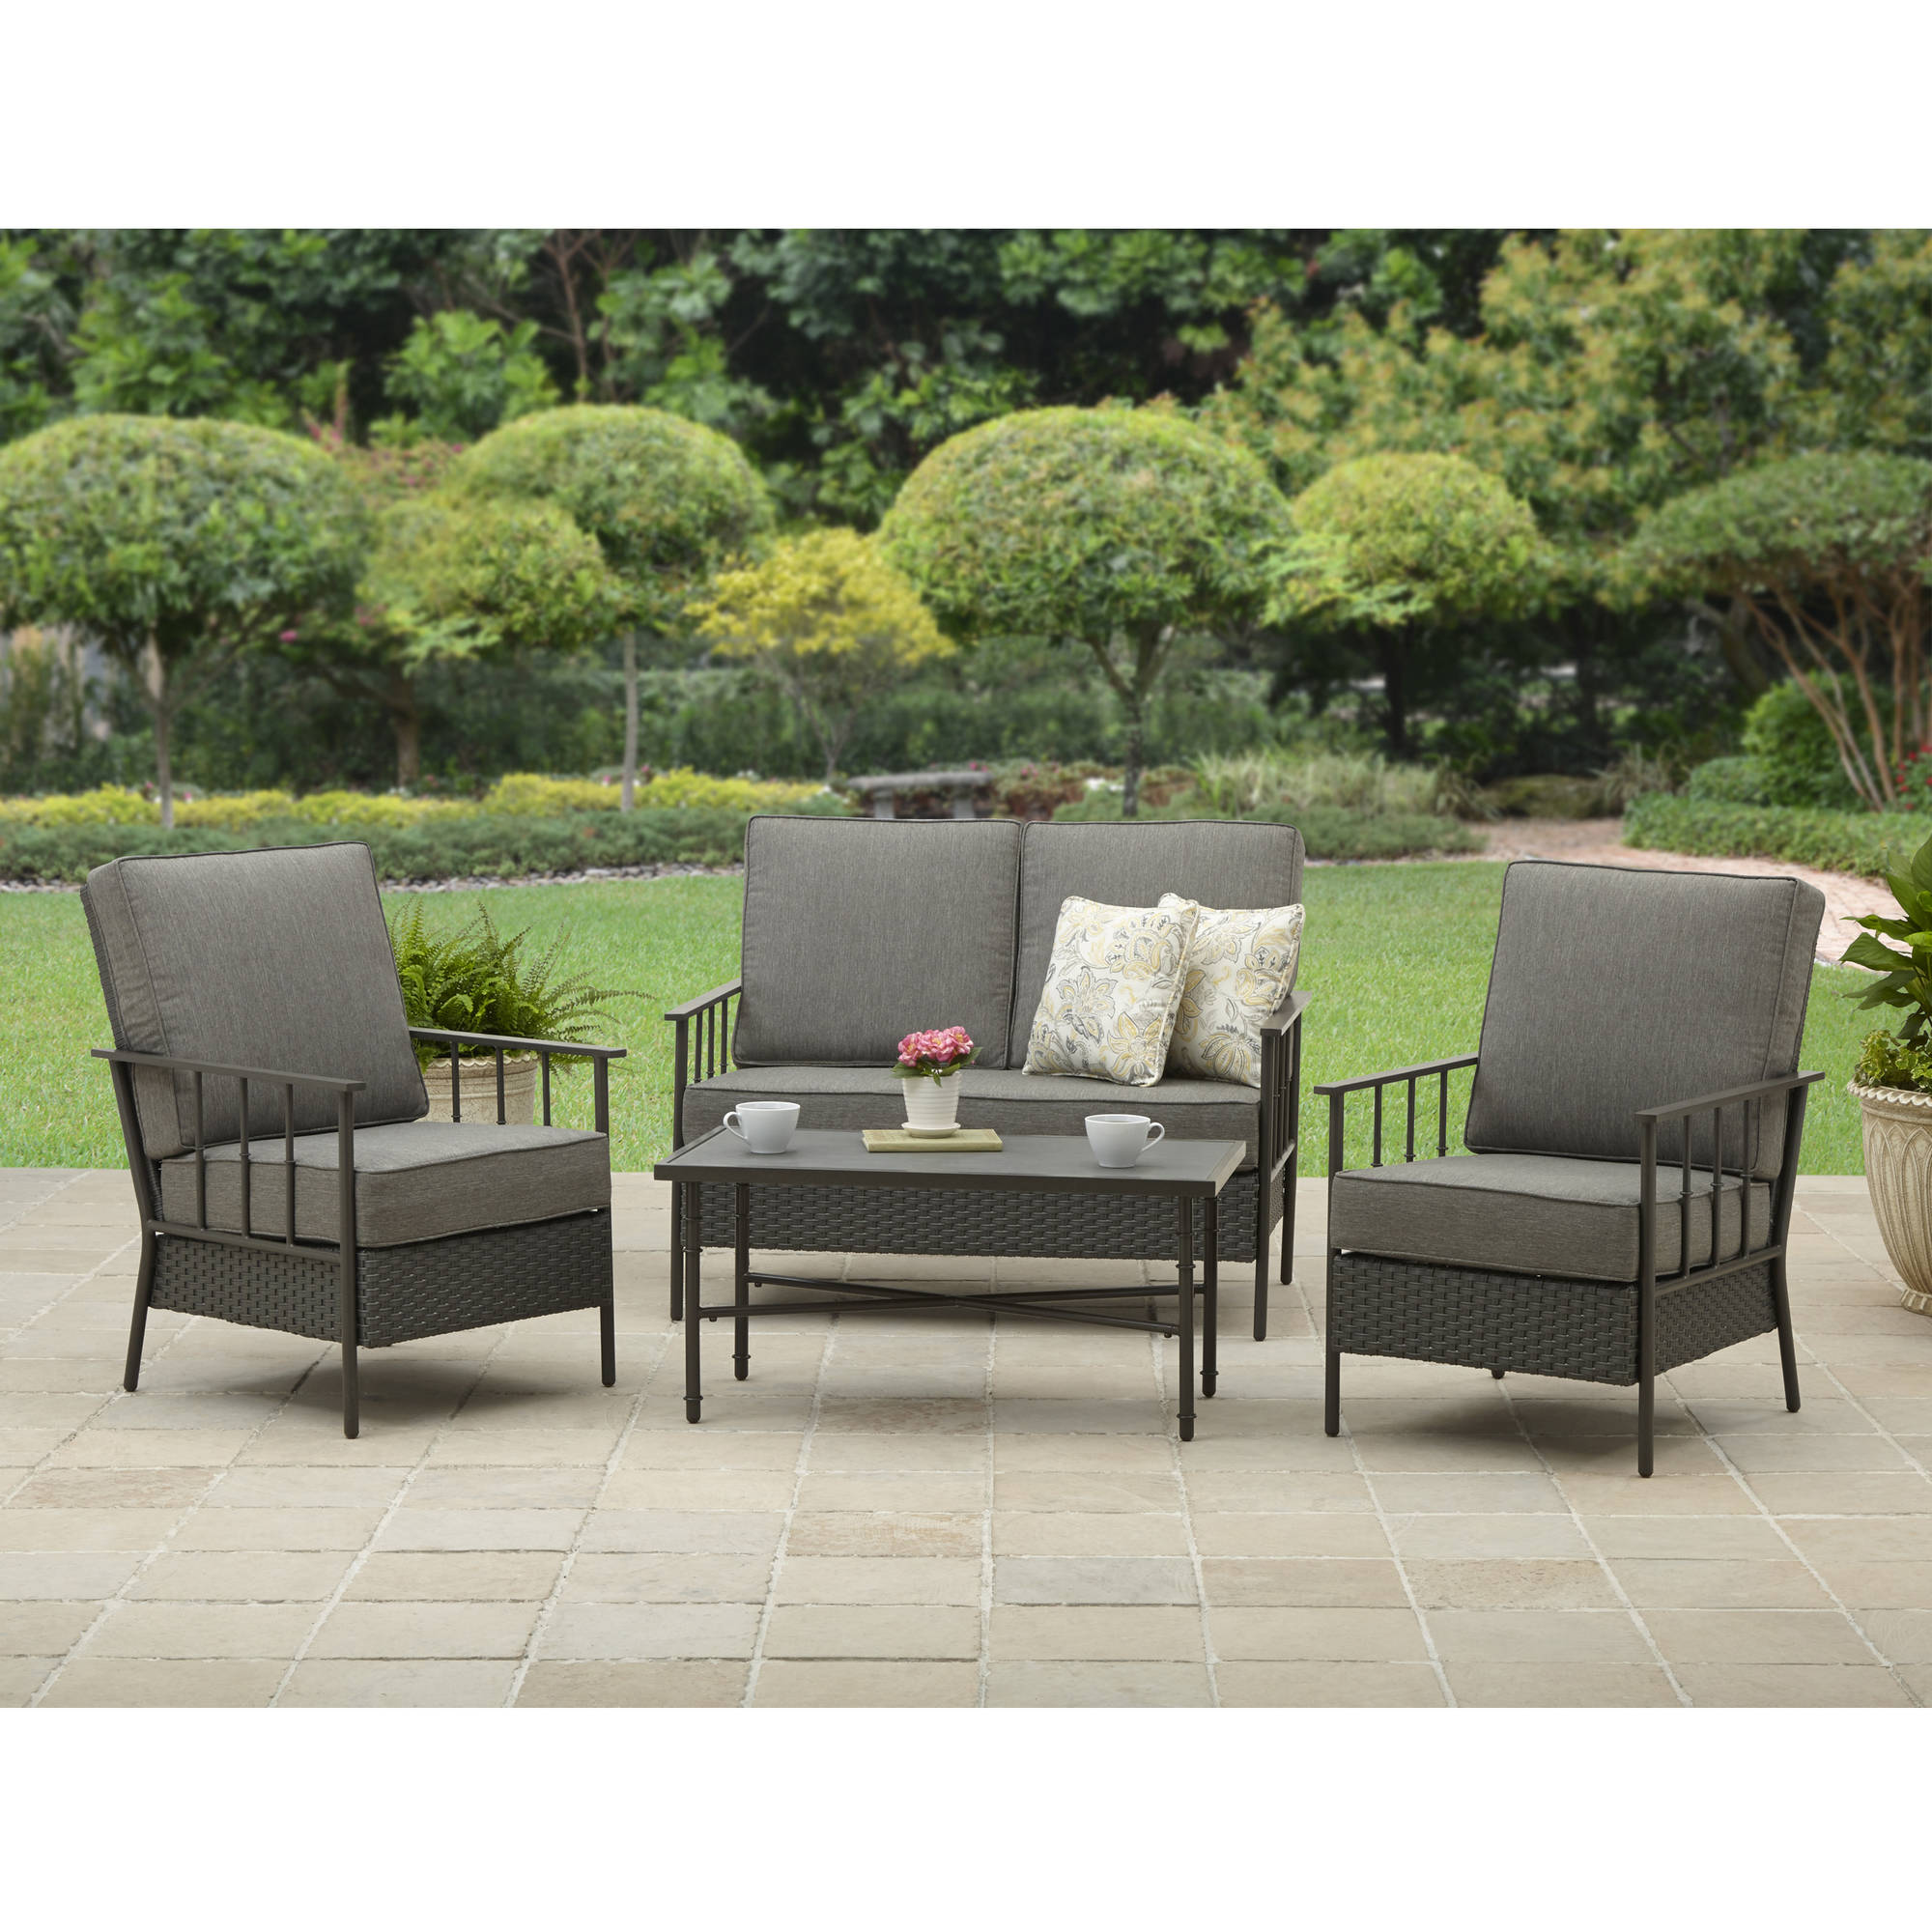 Patio furniture at furniture complete 7 better homes and gardens